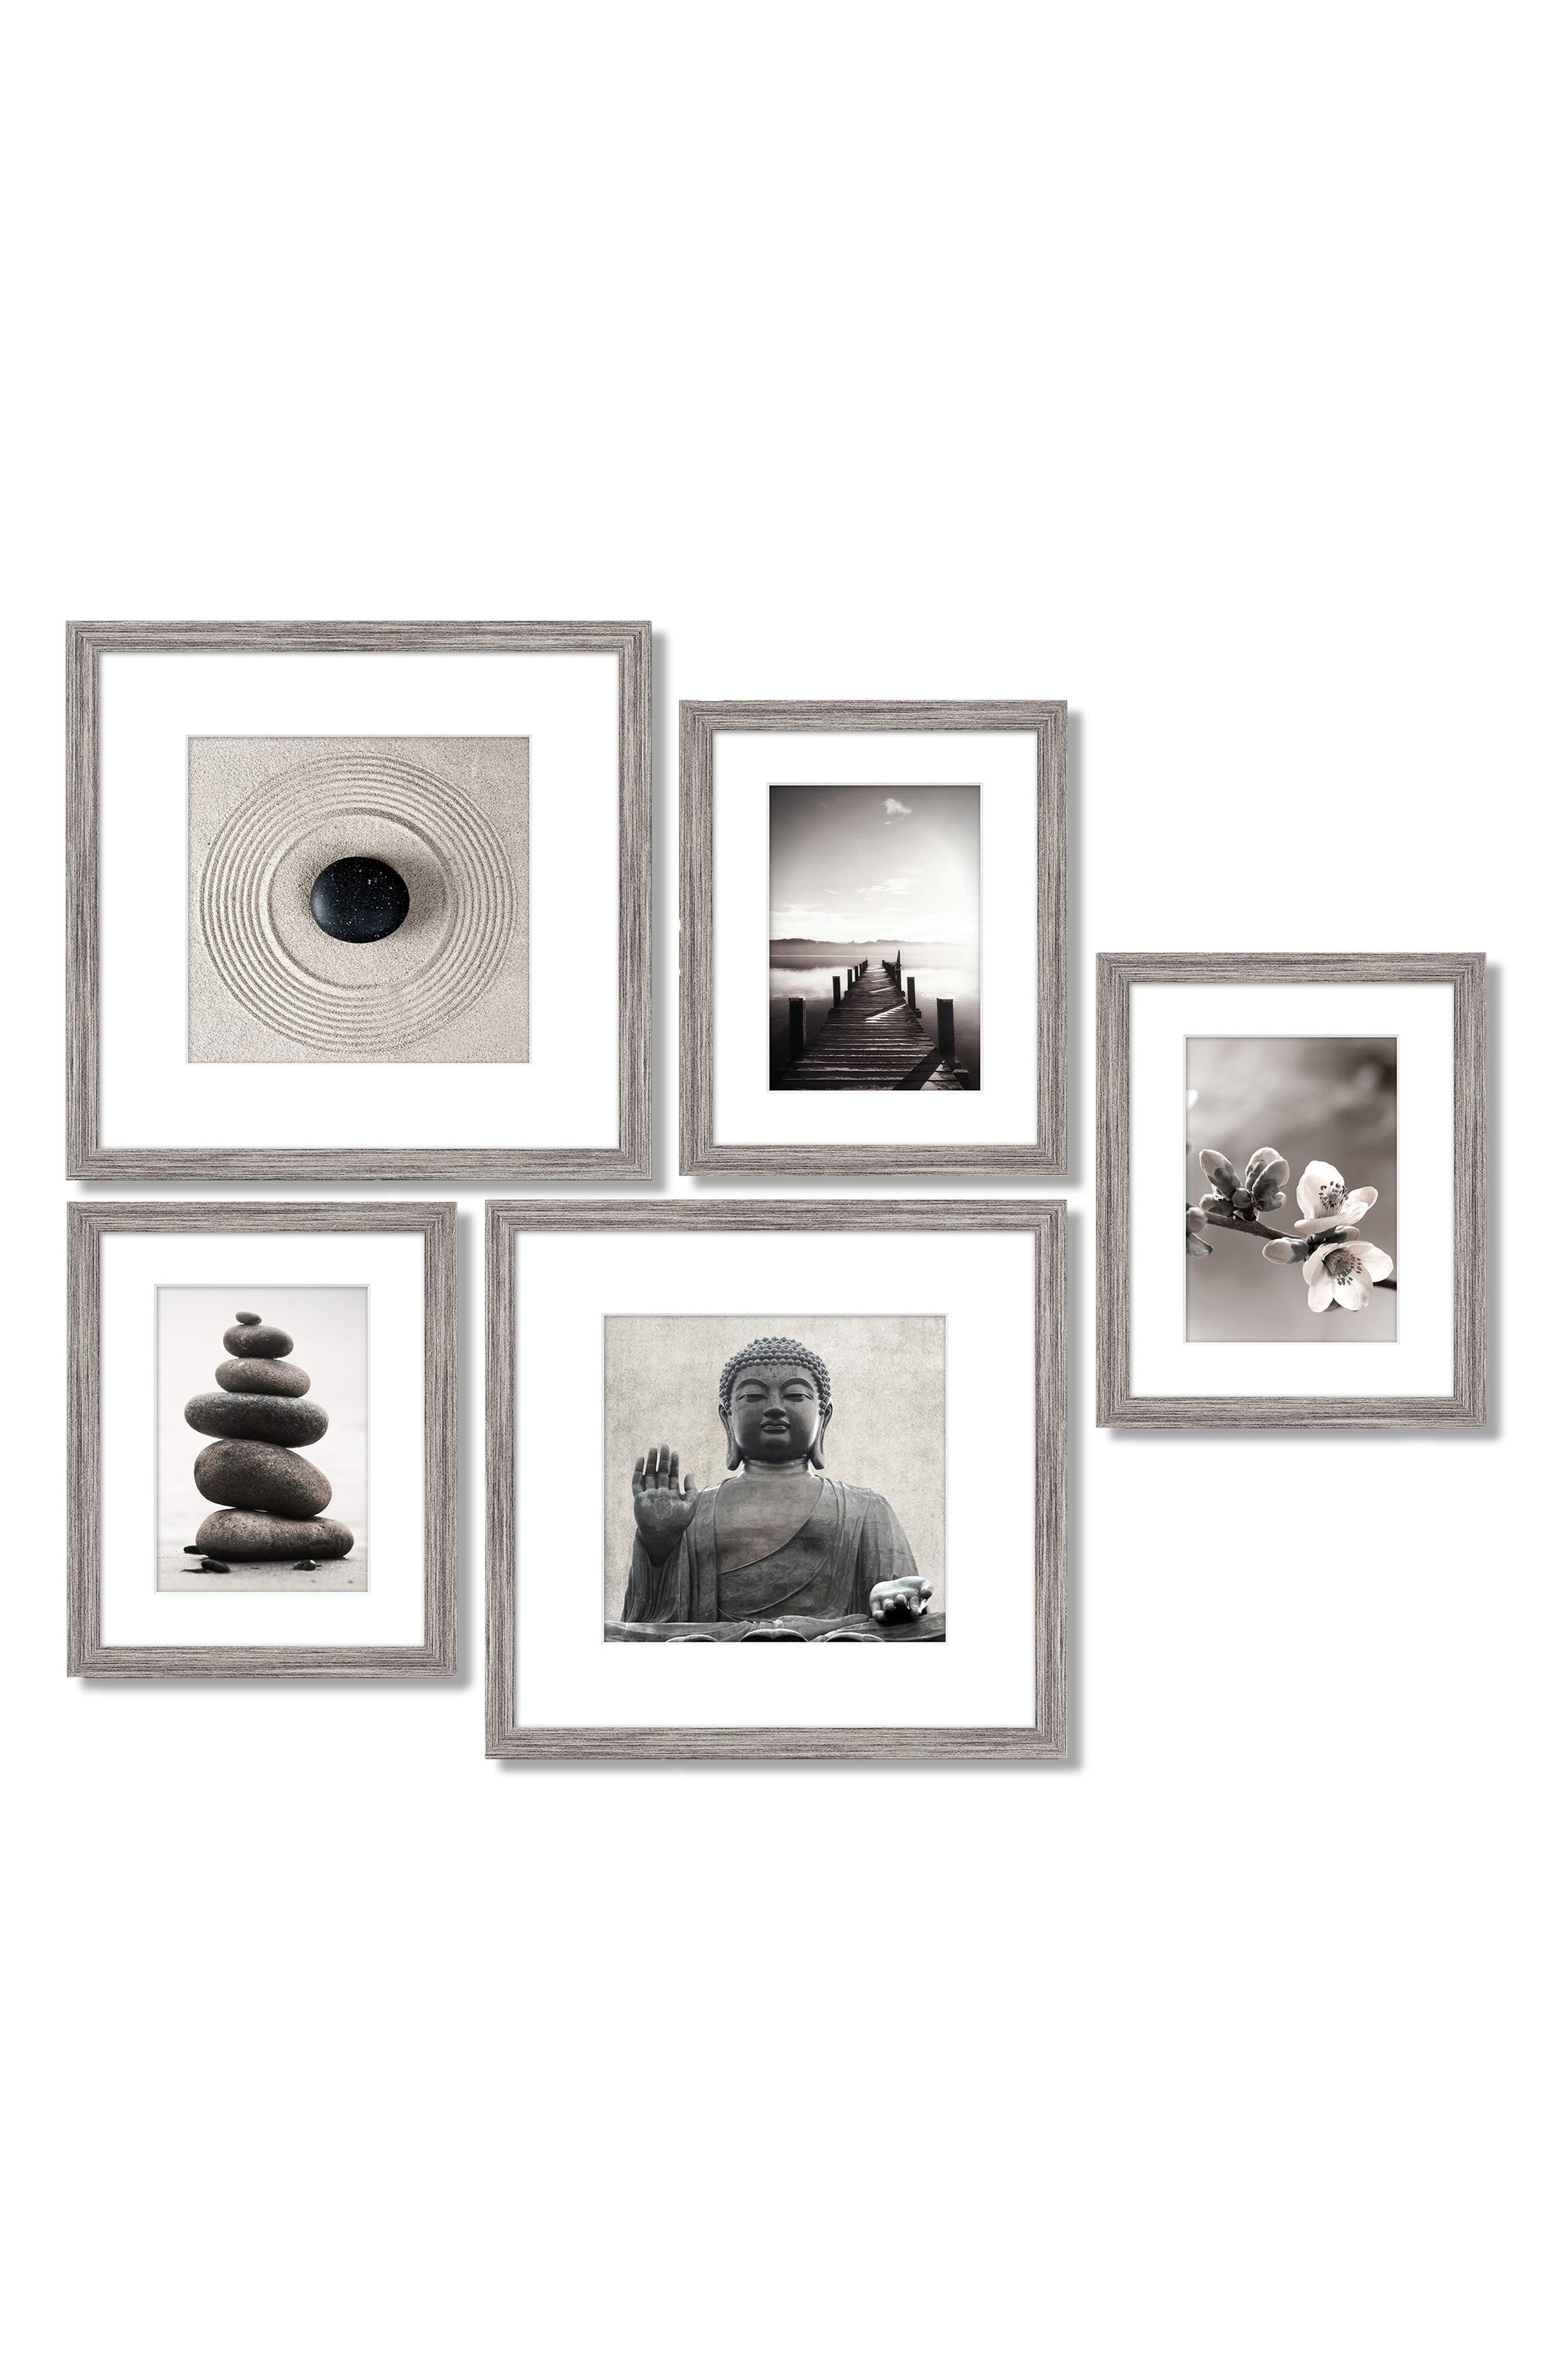 5-Piece Framed Wall Art Gallery,                             Main thumbnail 1, color,                             020